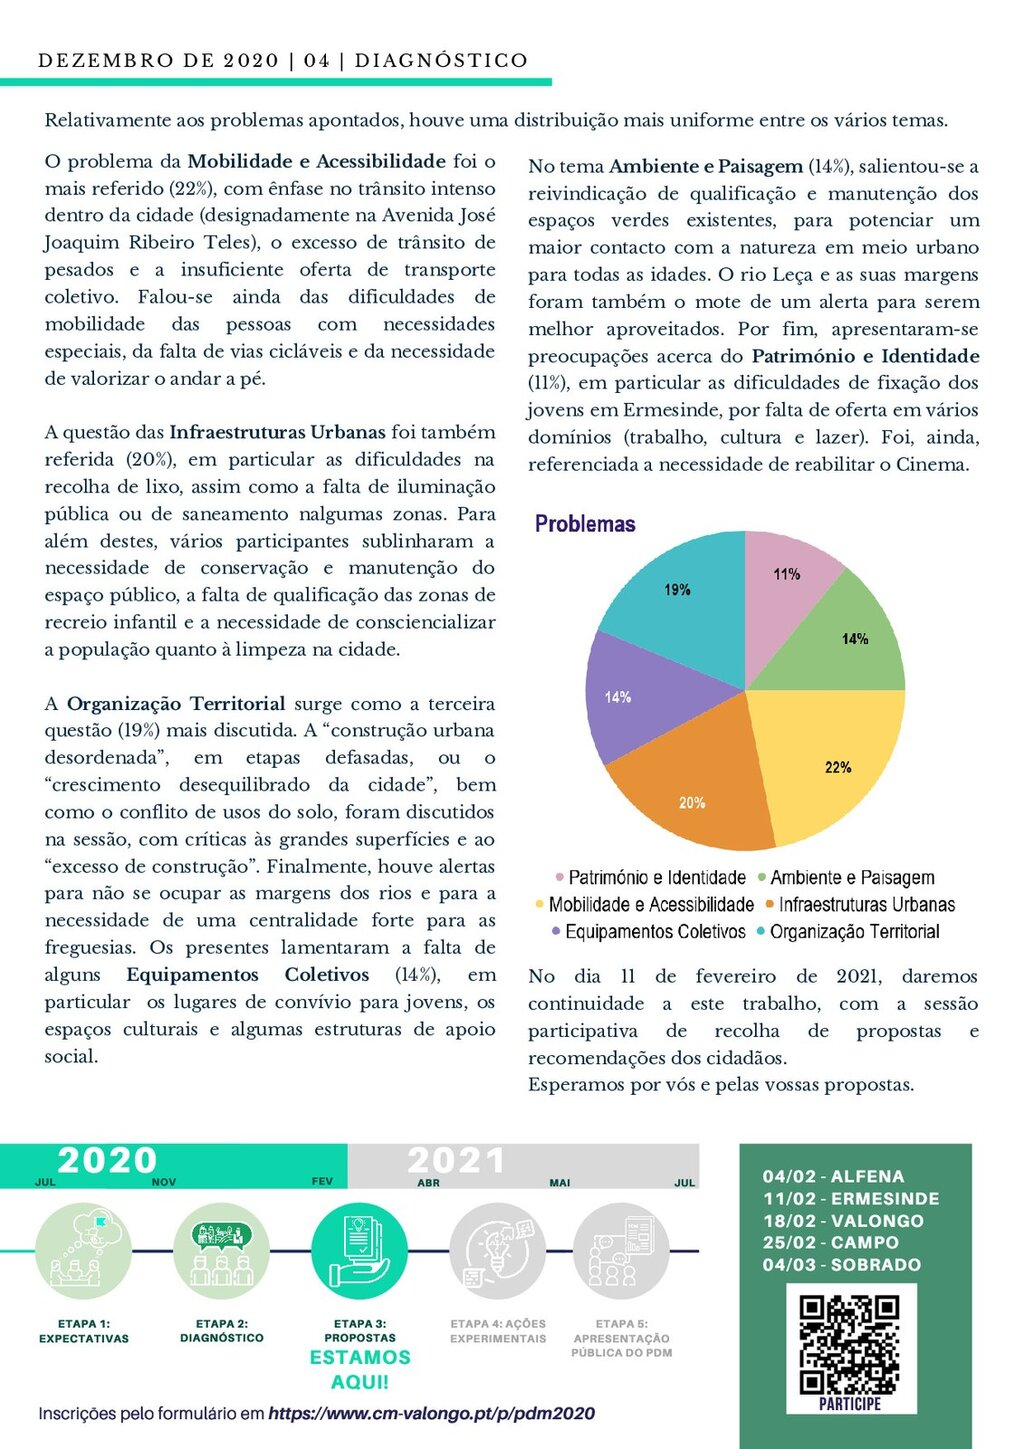 Newsletter#4 Valongo - Ermesinde (1)_003